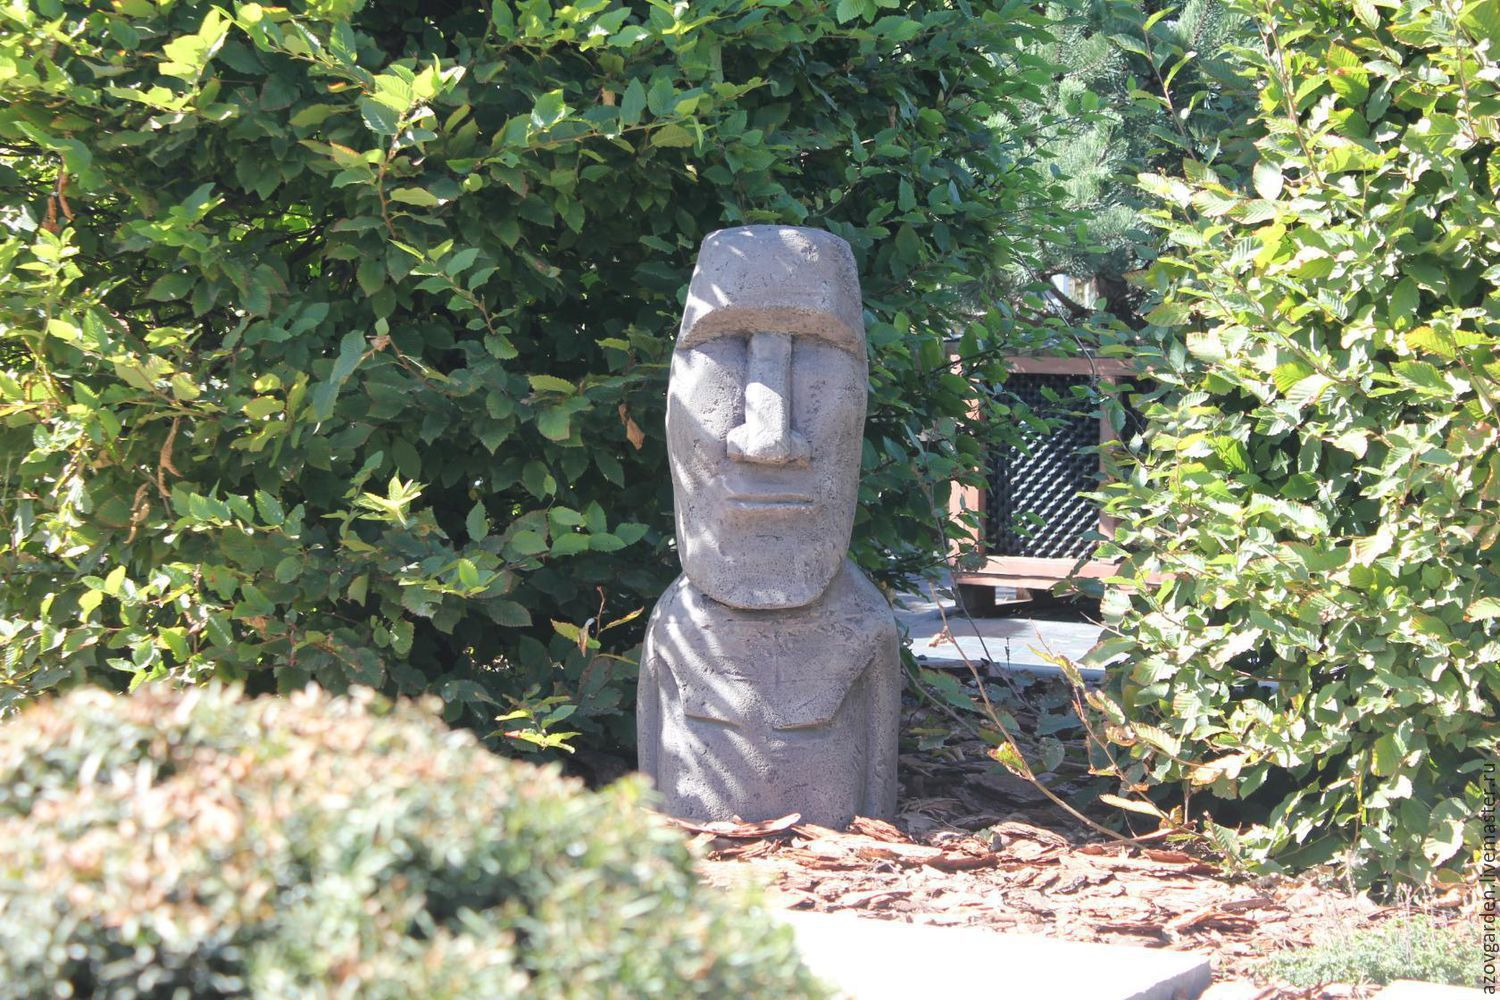 Superieur MOAI Statue From Easter Island Out Of Concrete For Garden ...